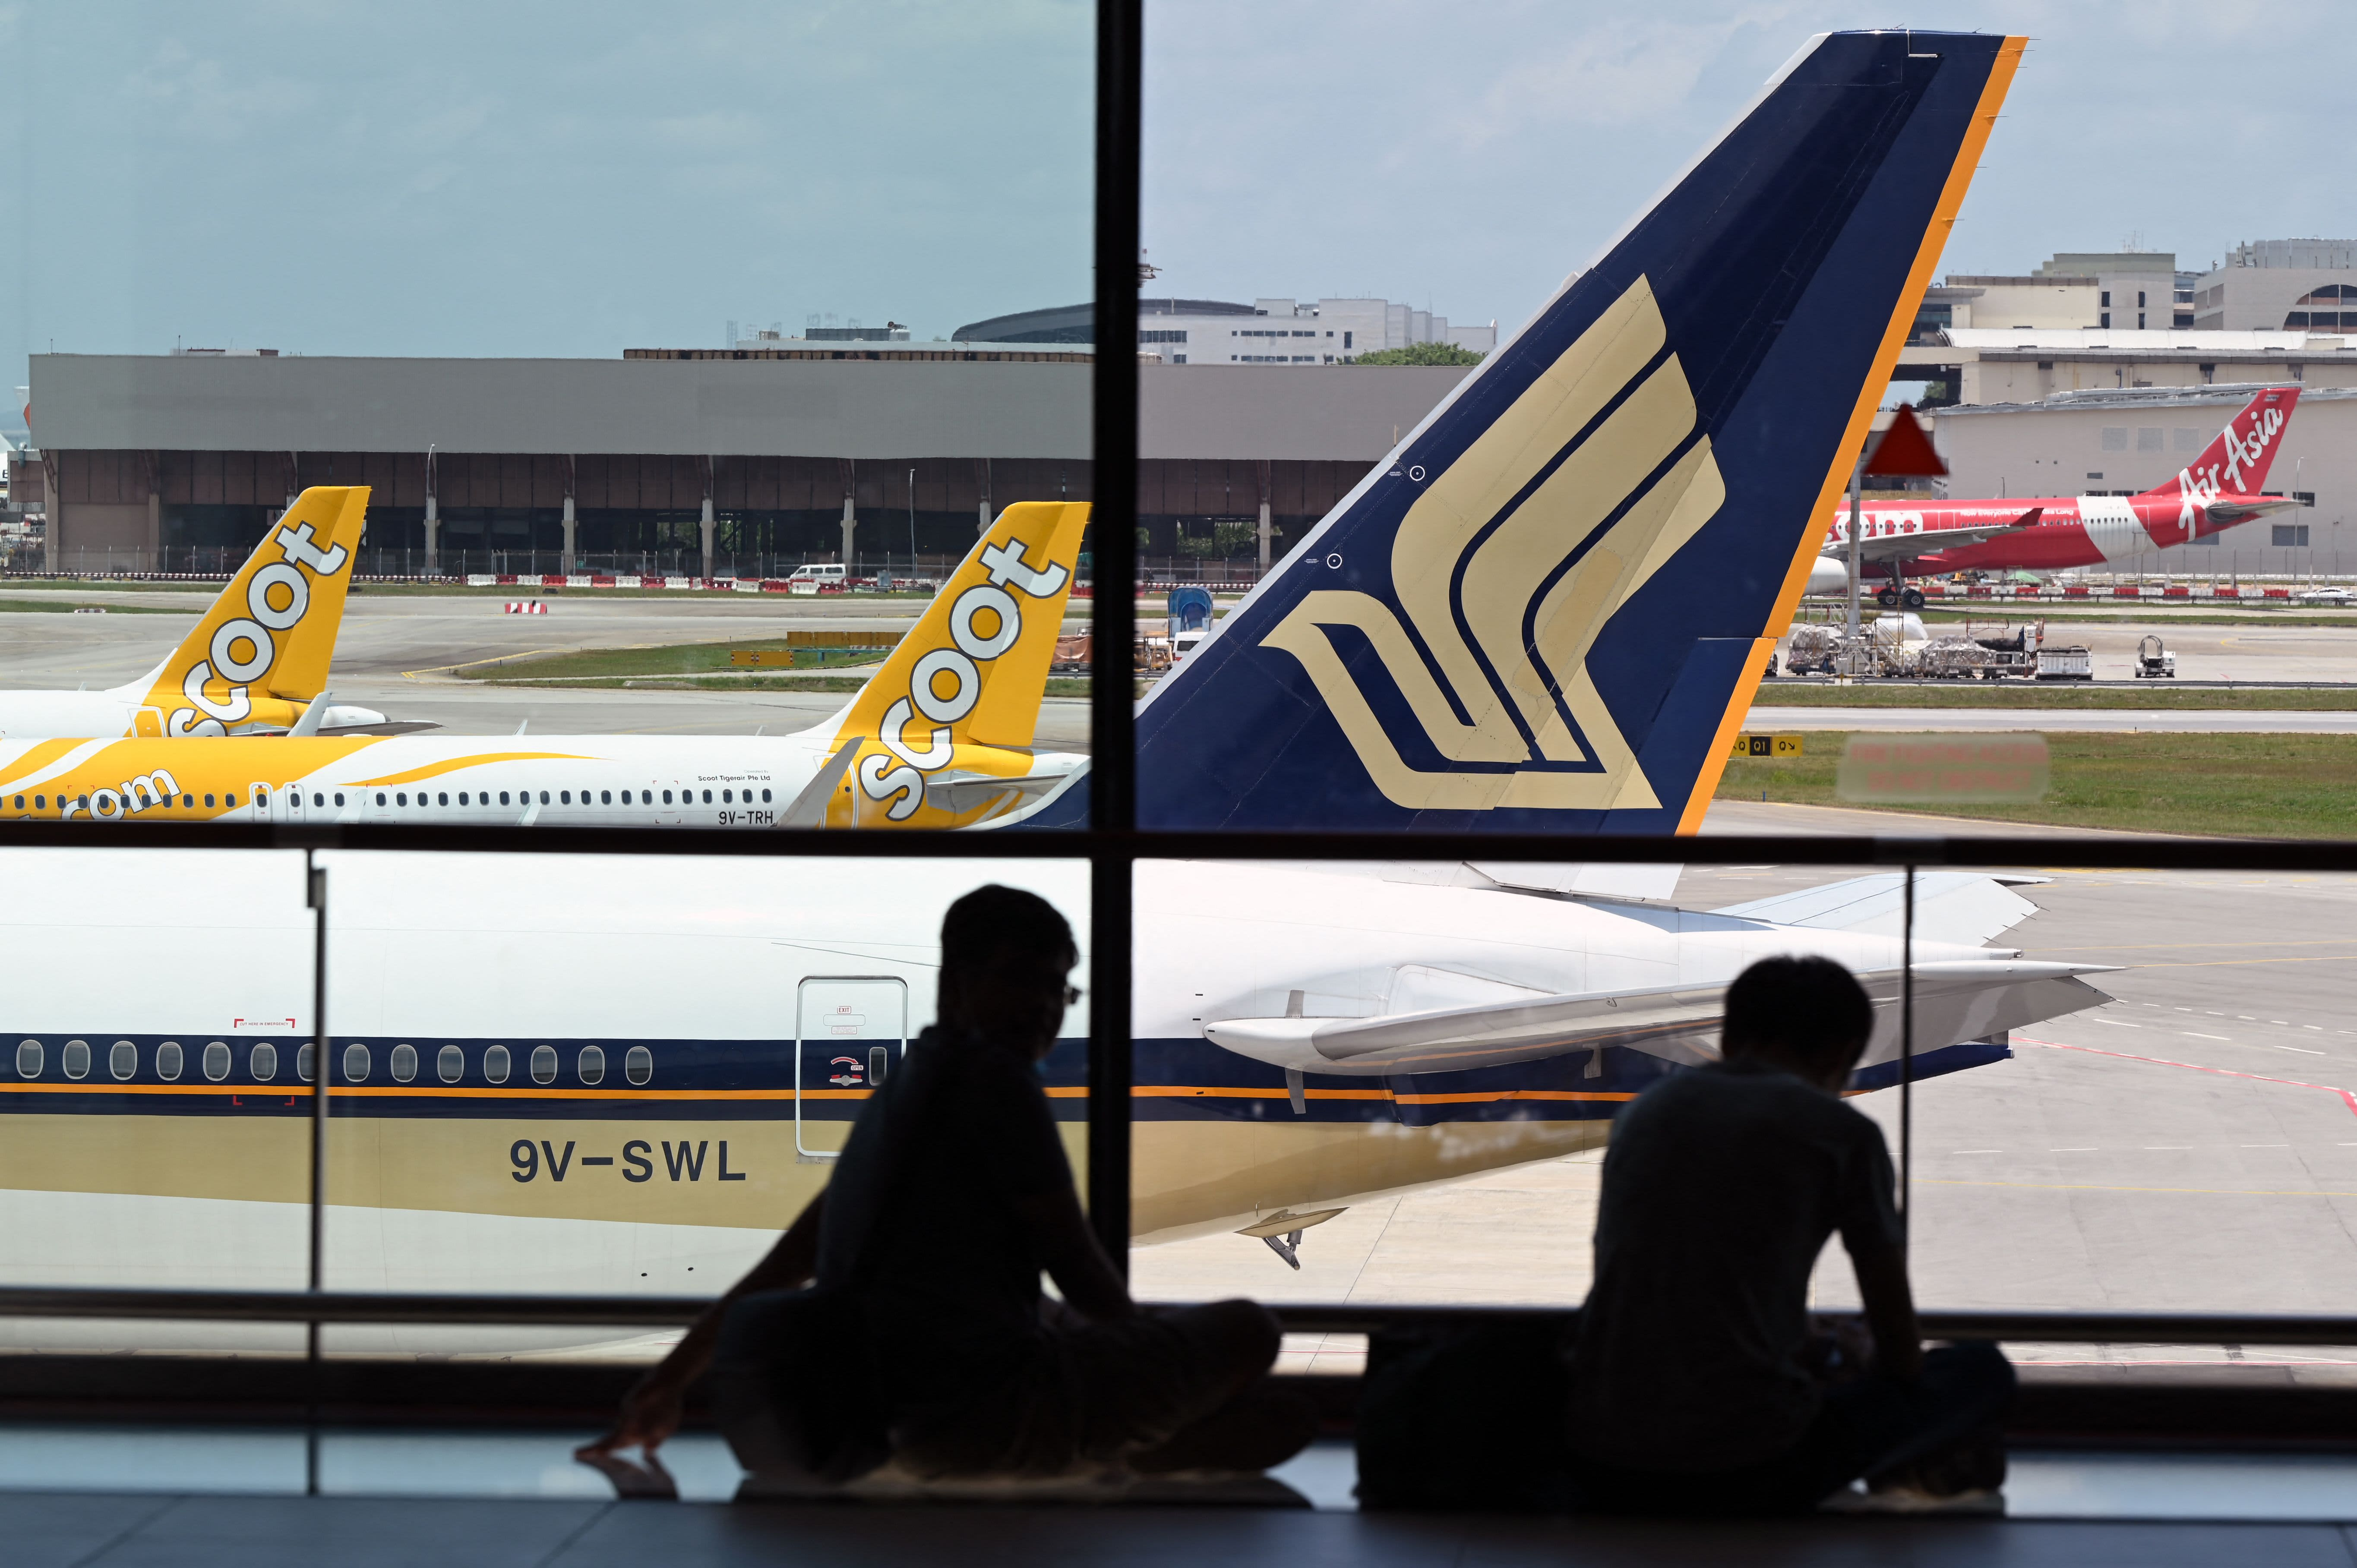 Expedia travel searches for Germany leap 10-fold after 'travel lane' announced in Singapore